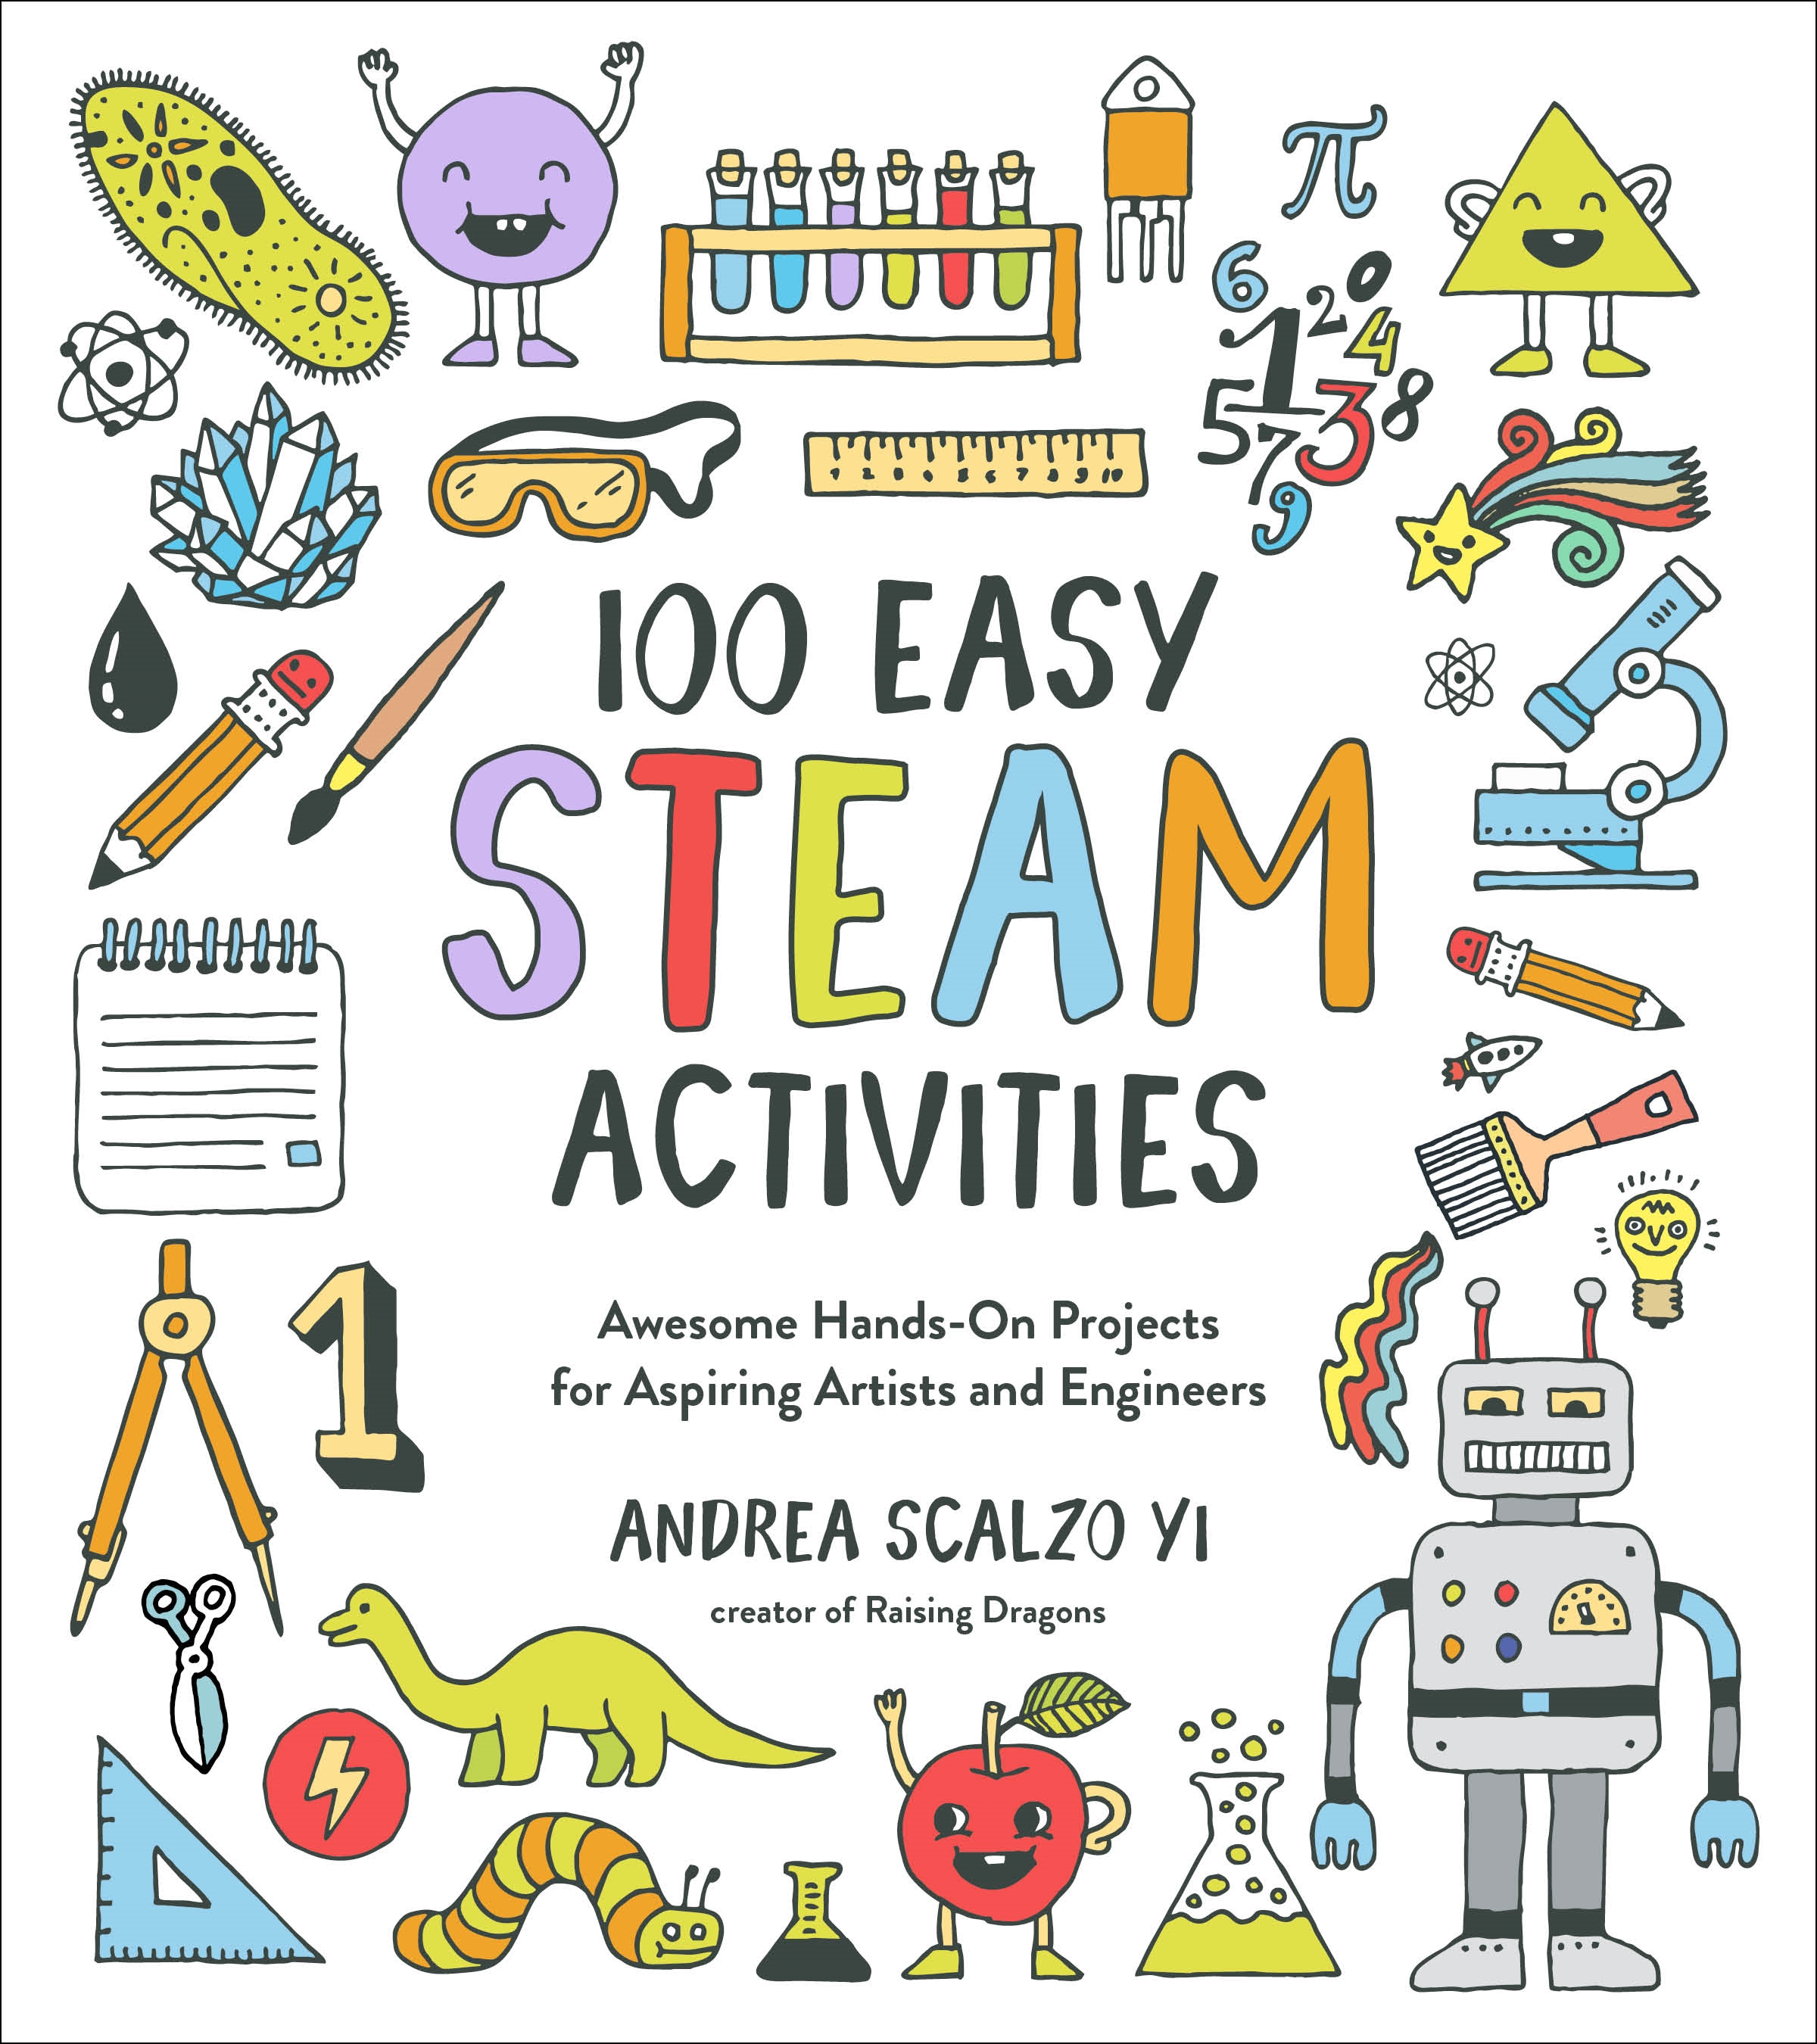 100 Easy STEAM Activities Awesome Hands-On Projects for Aspiring Artists and Engineers